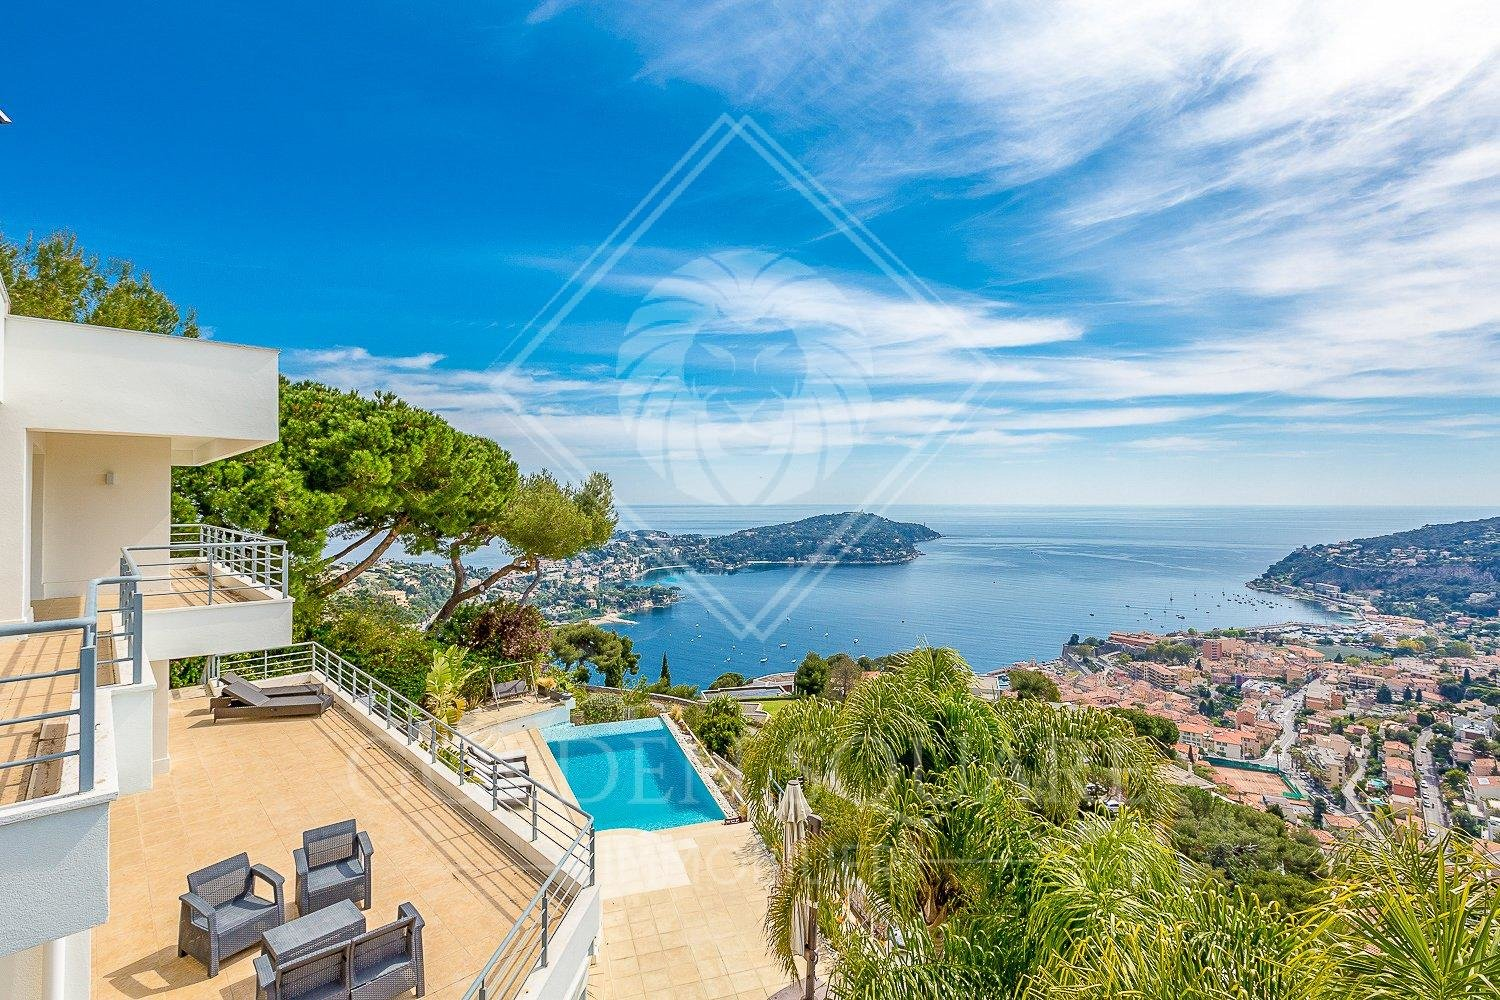 LA CASTELLET - 5 BEDROOM - MAGNIFICIENT VILLA SEAVIEW